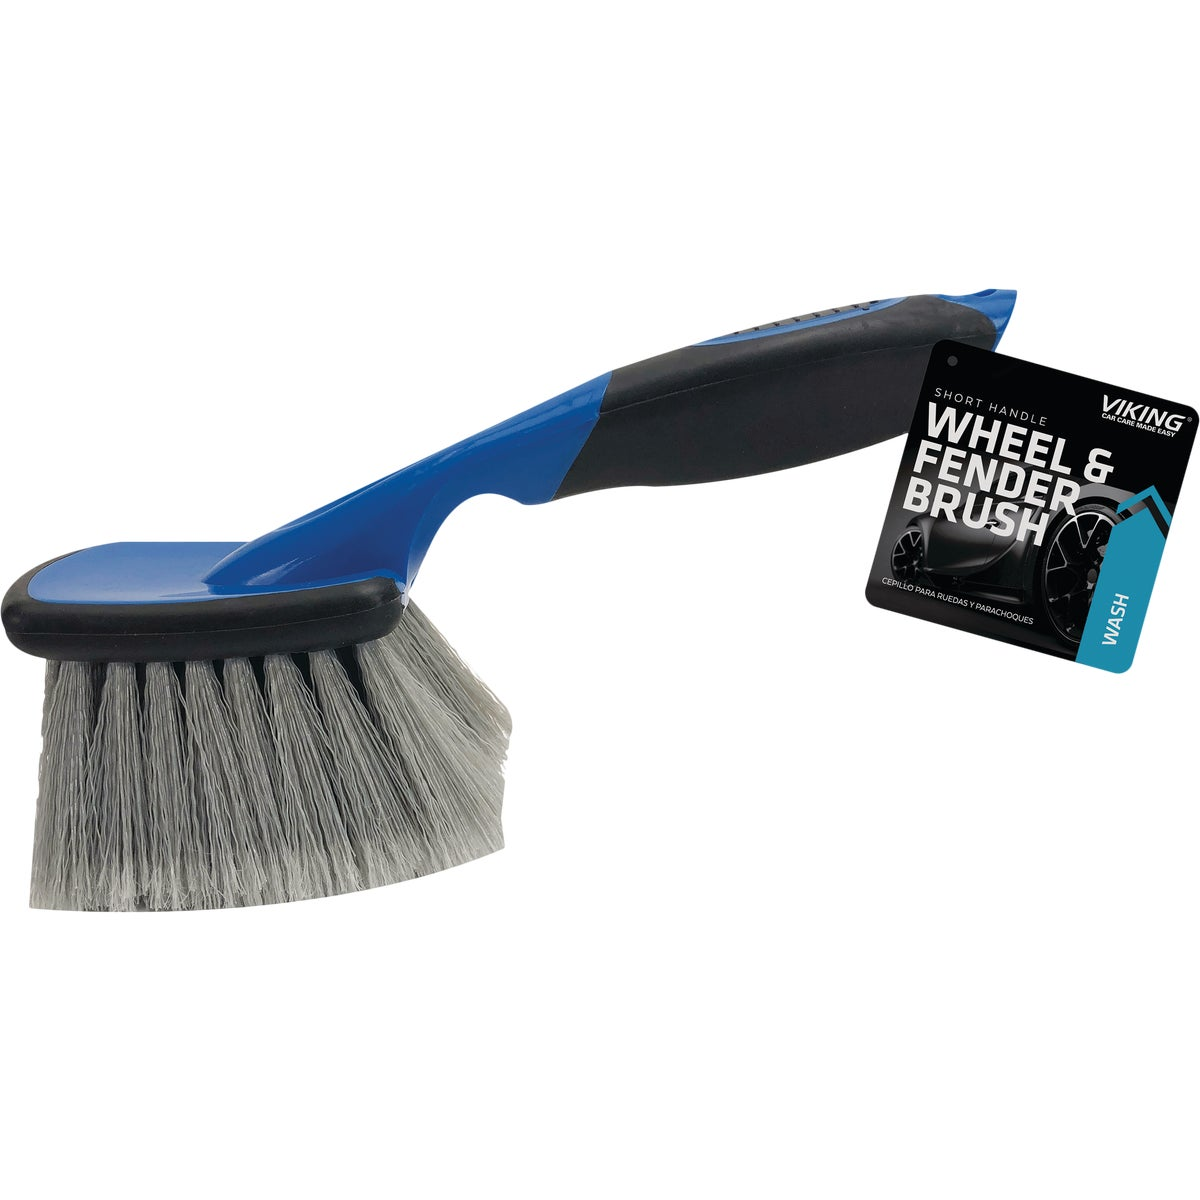 WHEEL/BUMPER BRUSH